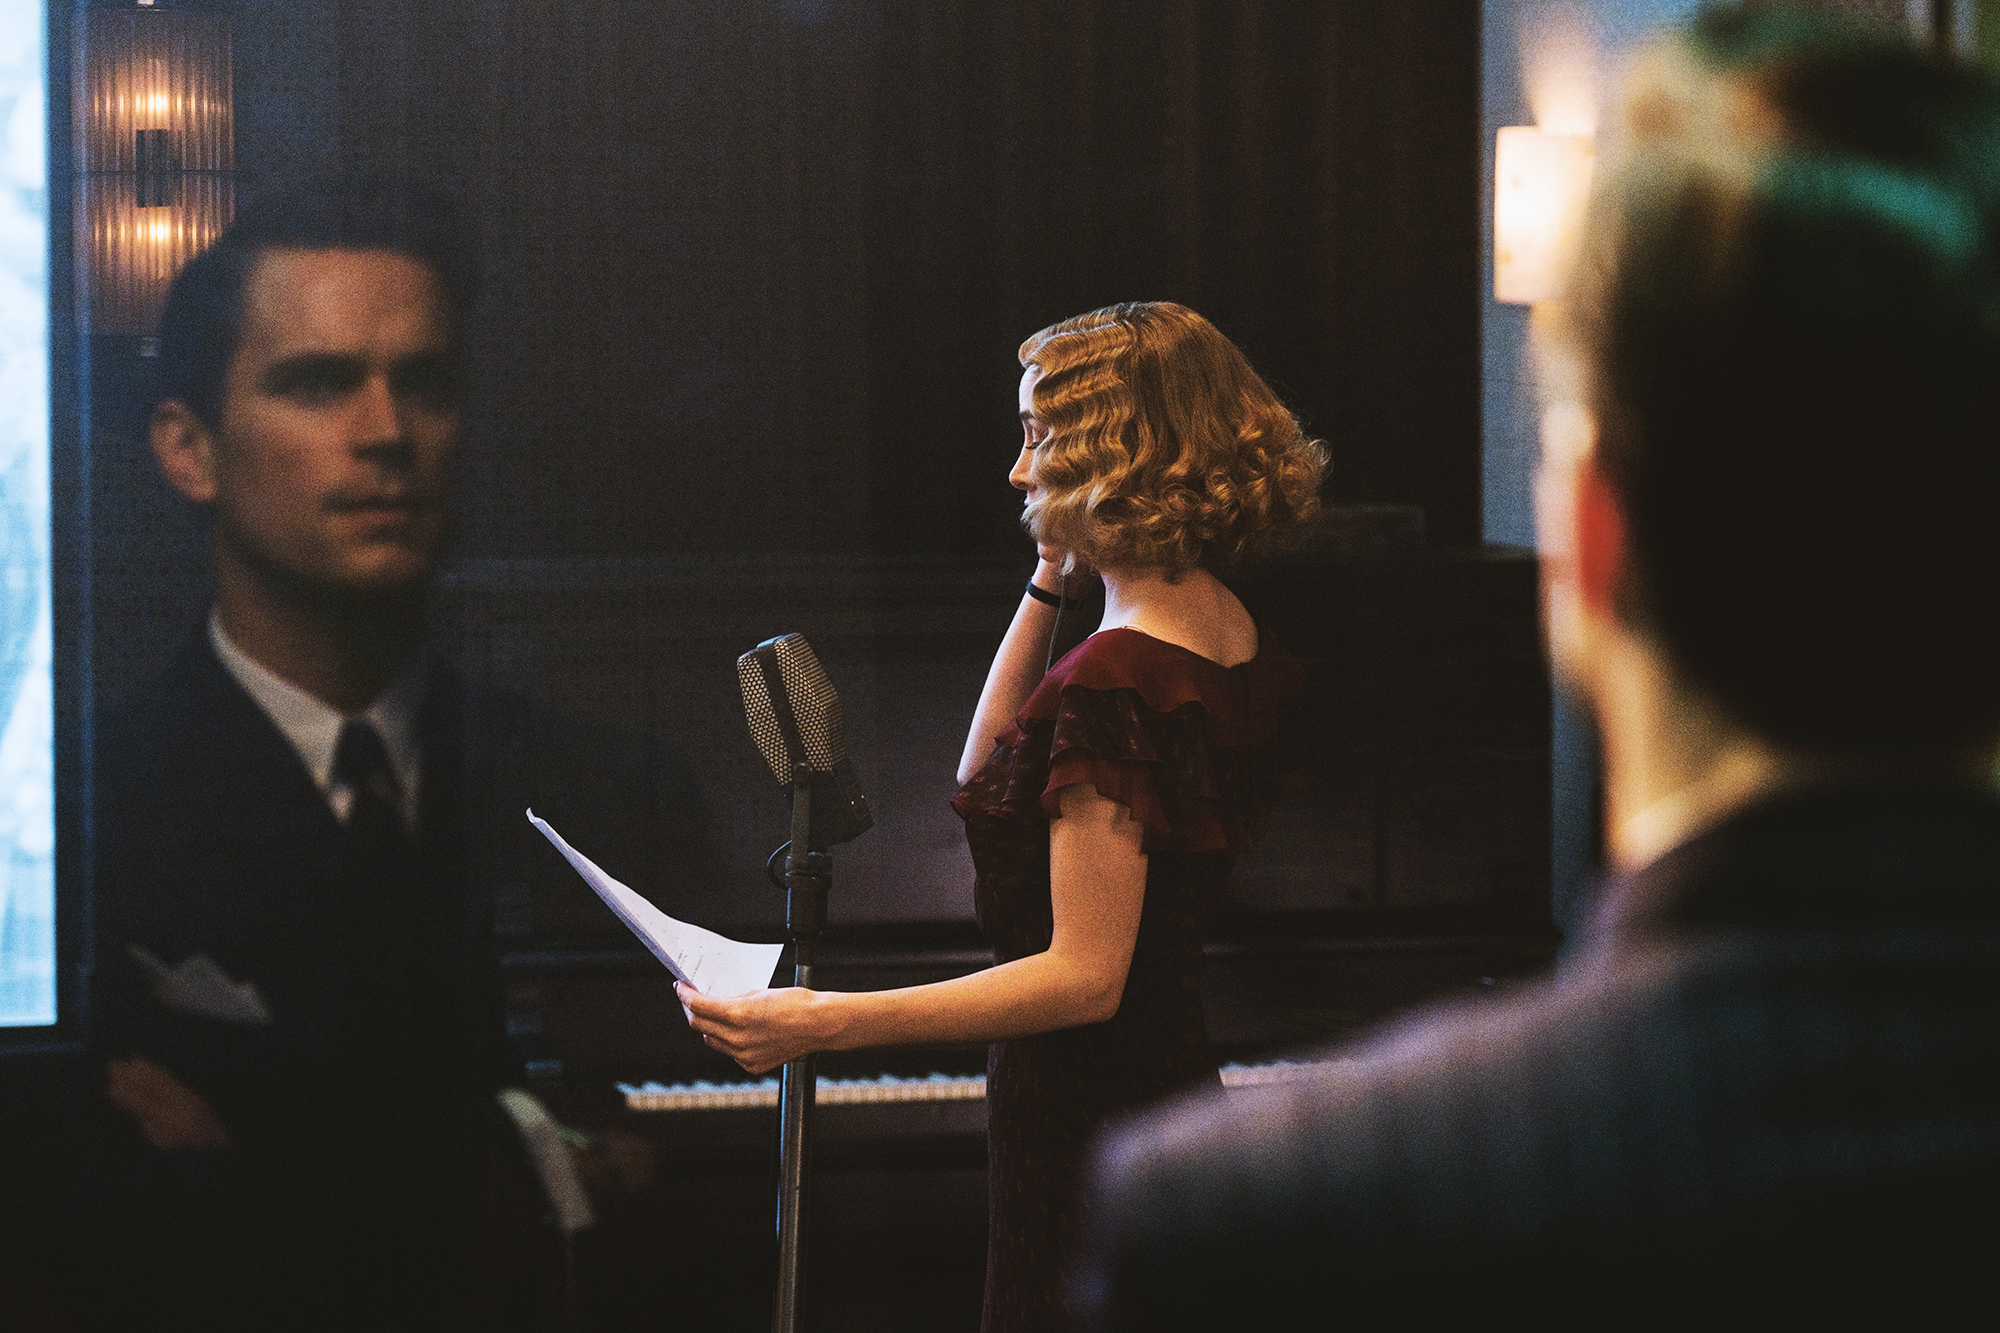 Bomer, playing a genius producer with a hand in everything, watches over his stars